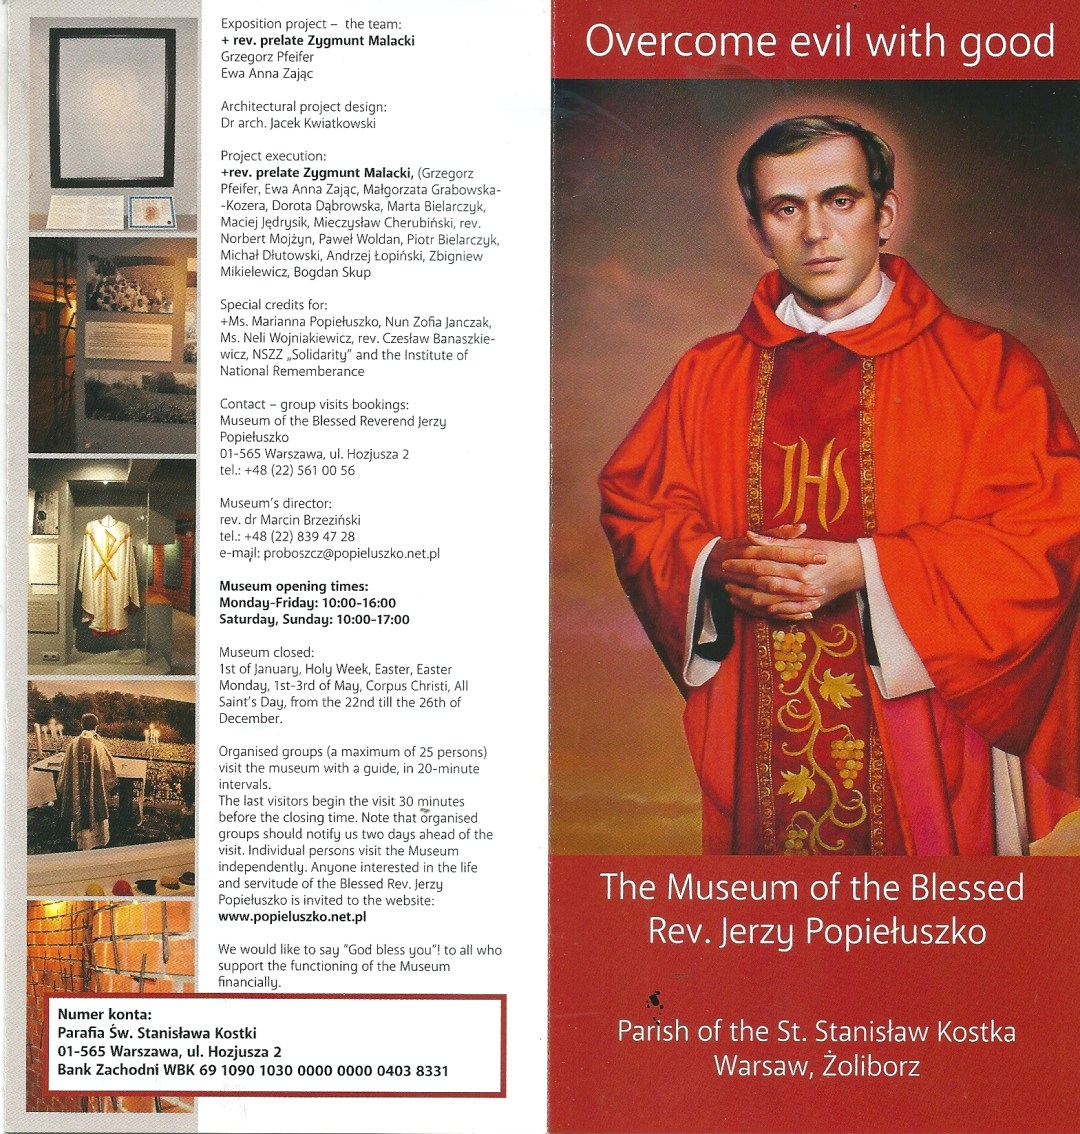 2016-visit-to-warsaw-and-to-the-museum-of-blessed-father-jerzy-popieluszko-9